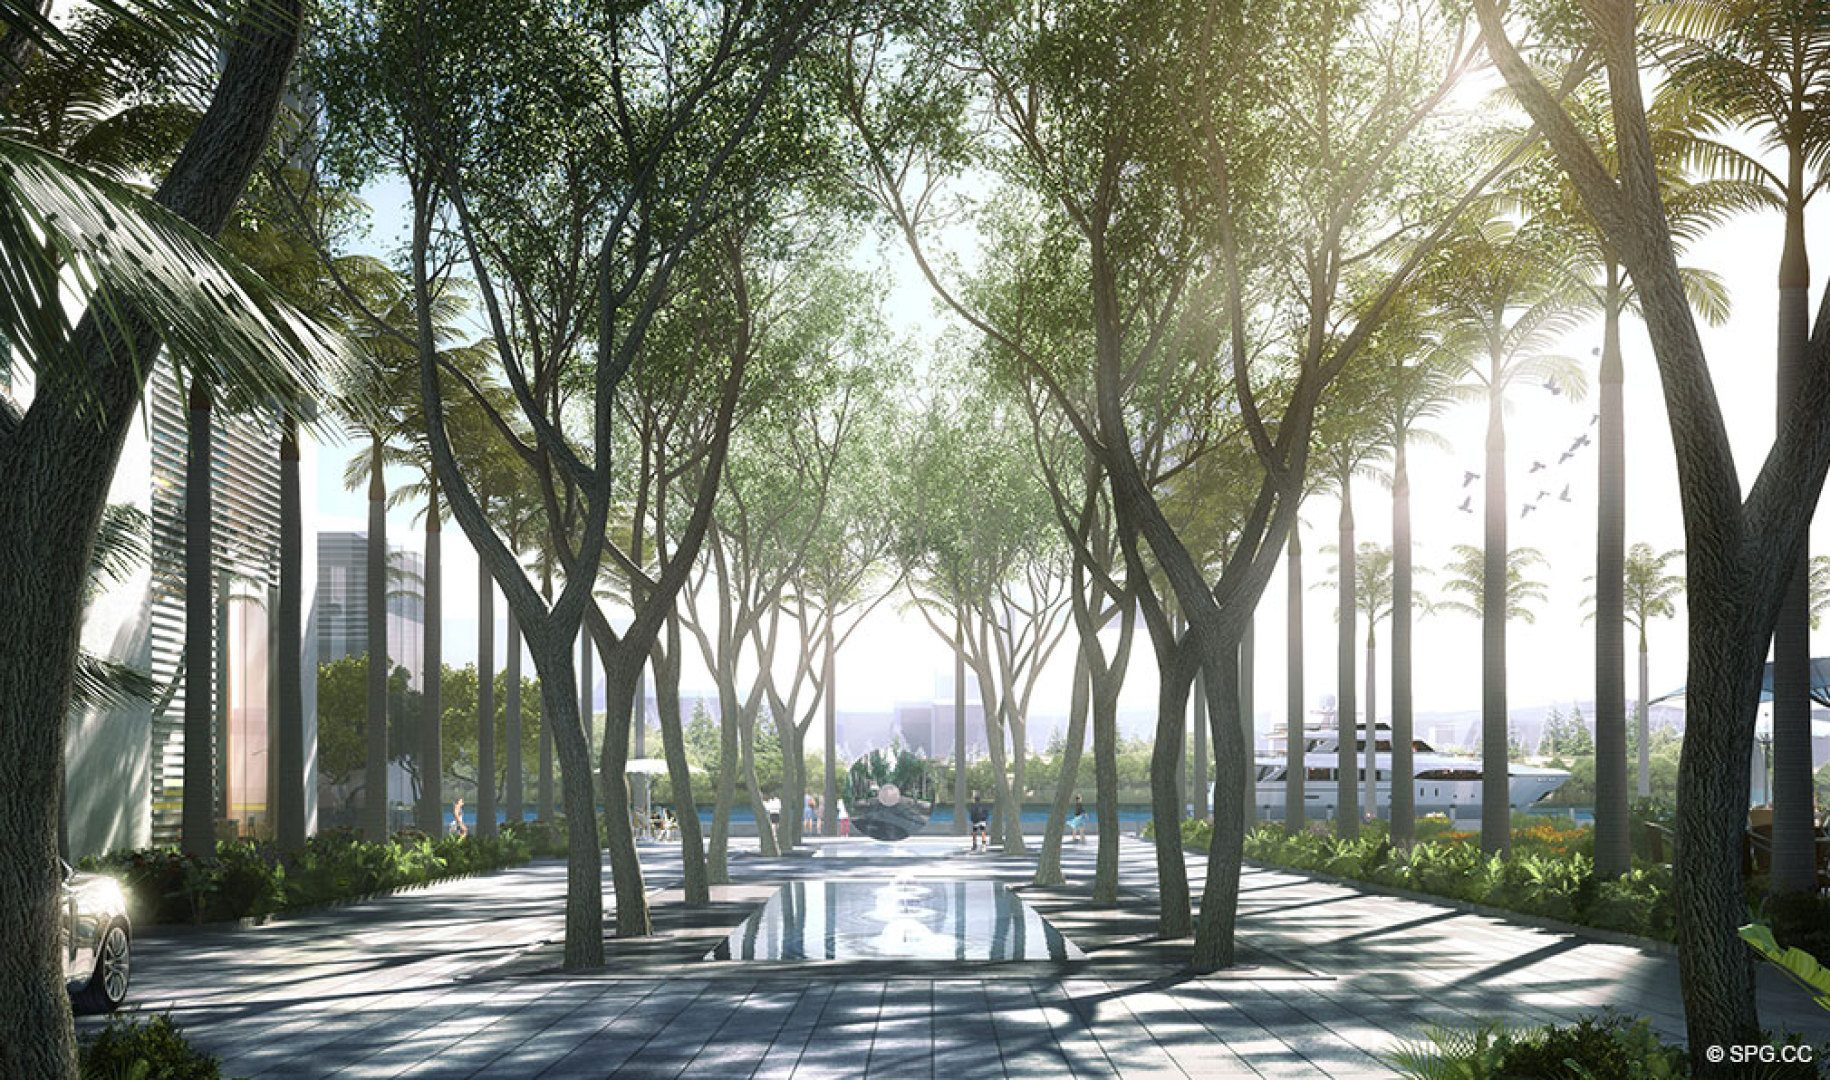 Lush Contemporary Landscaping at One River Point, Luxury Waterfront Condos in Miami, Florida 33130